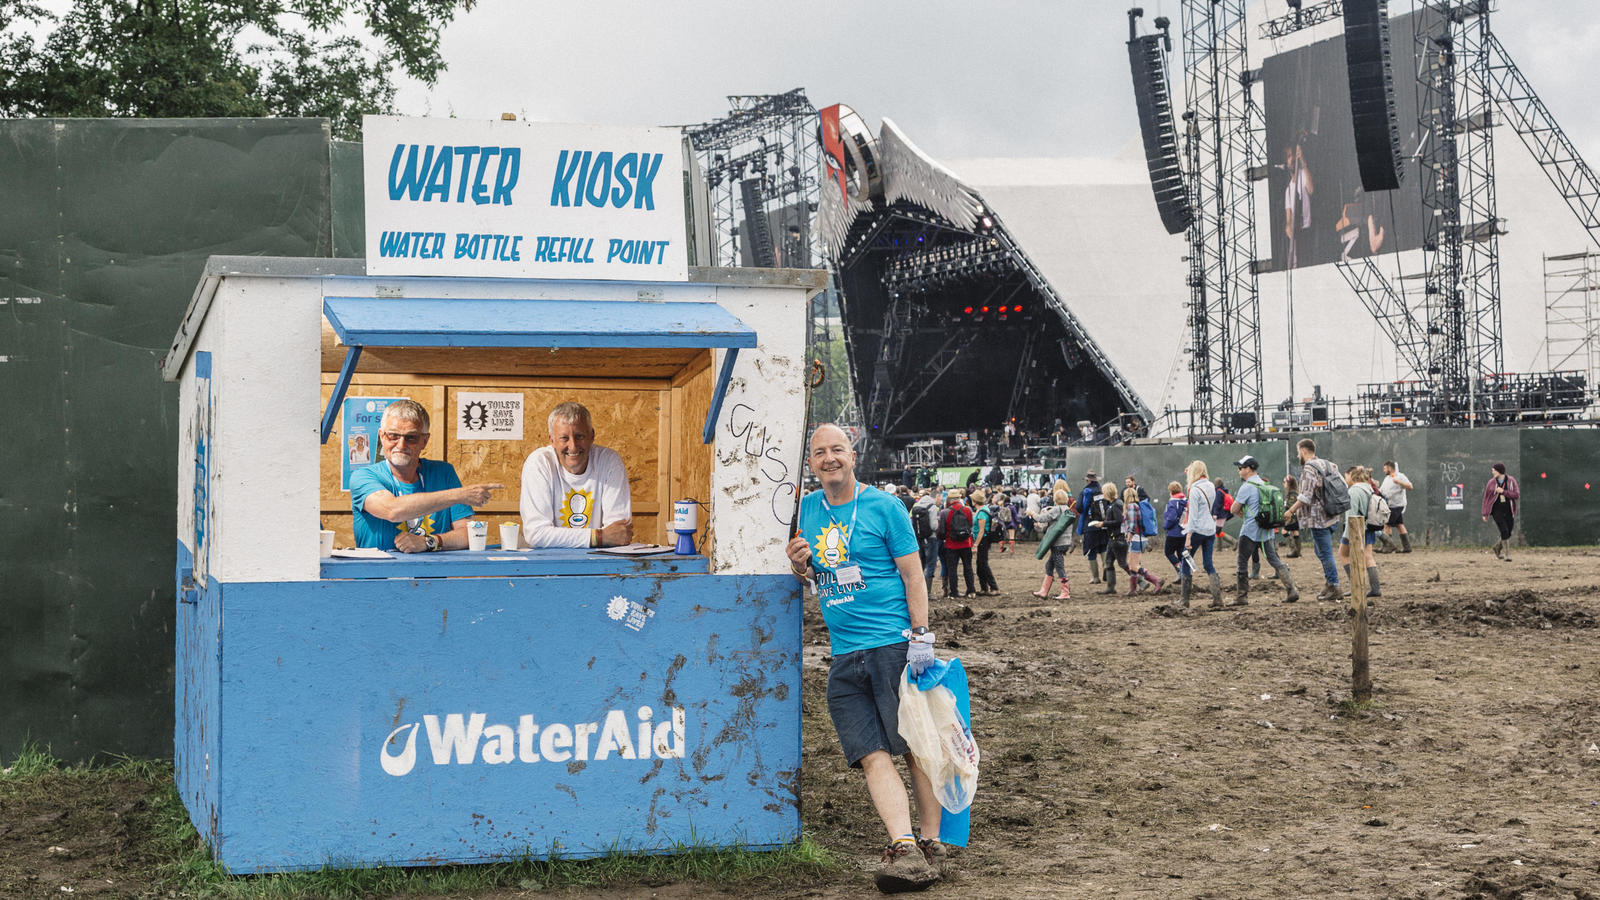 WaterAid volunteers Frank and Andrew man a WaterAid kiosk close to the Pyramid Stage at Glastonbury Festival